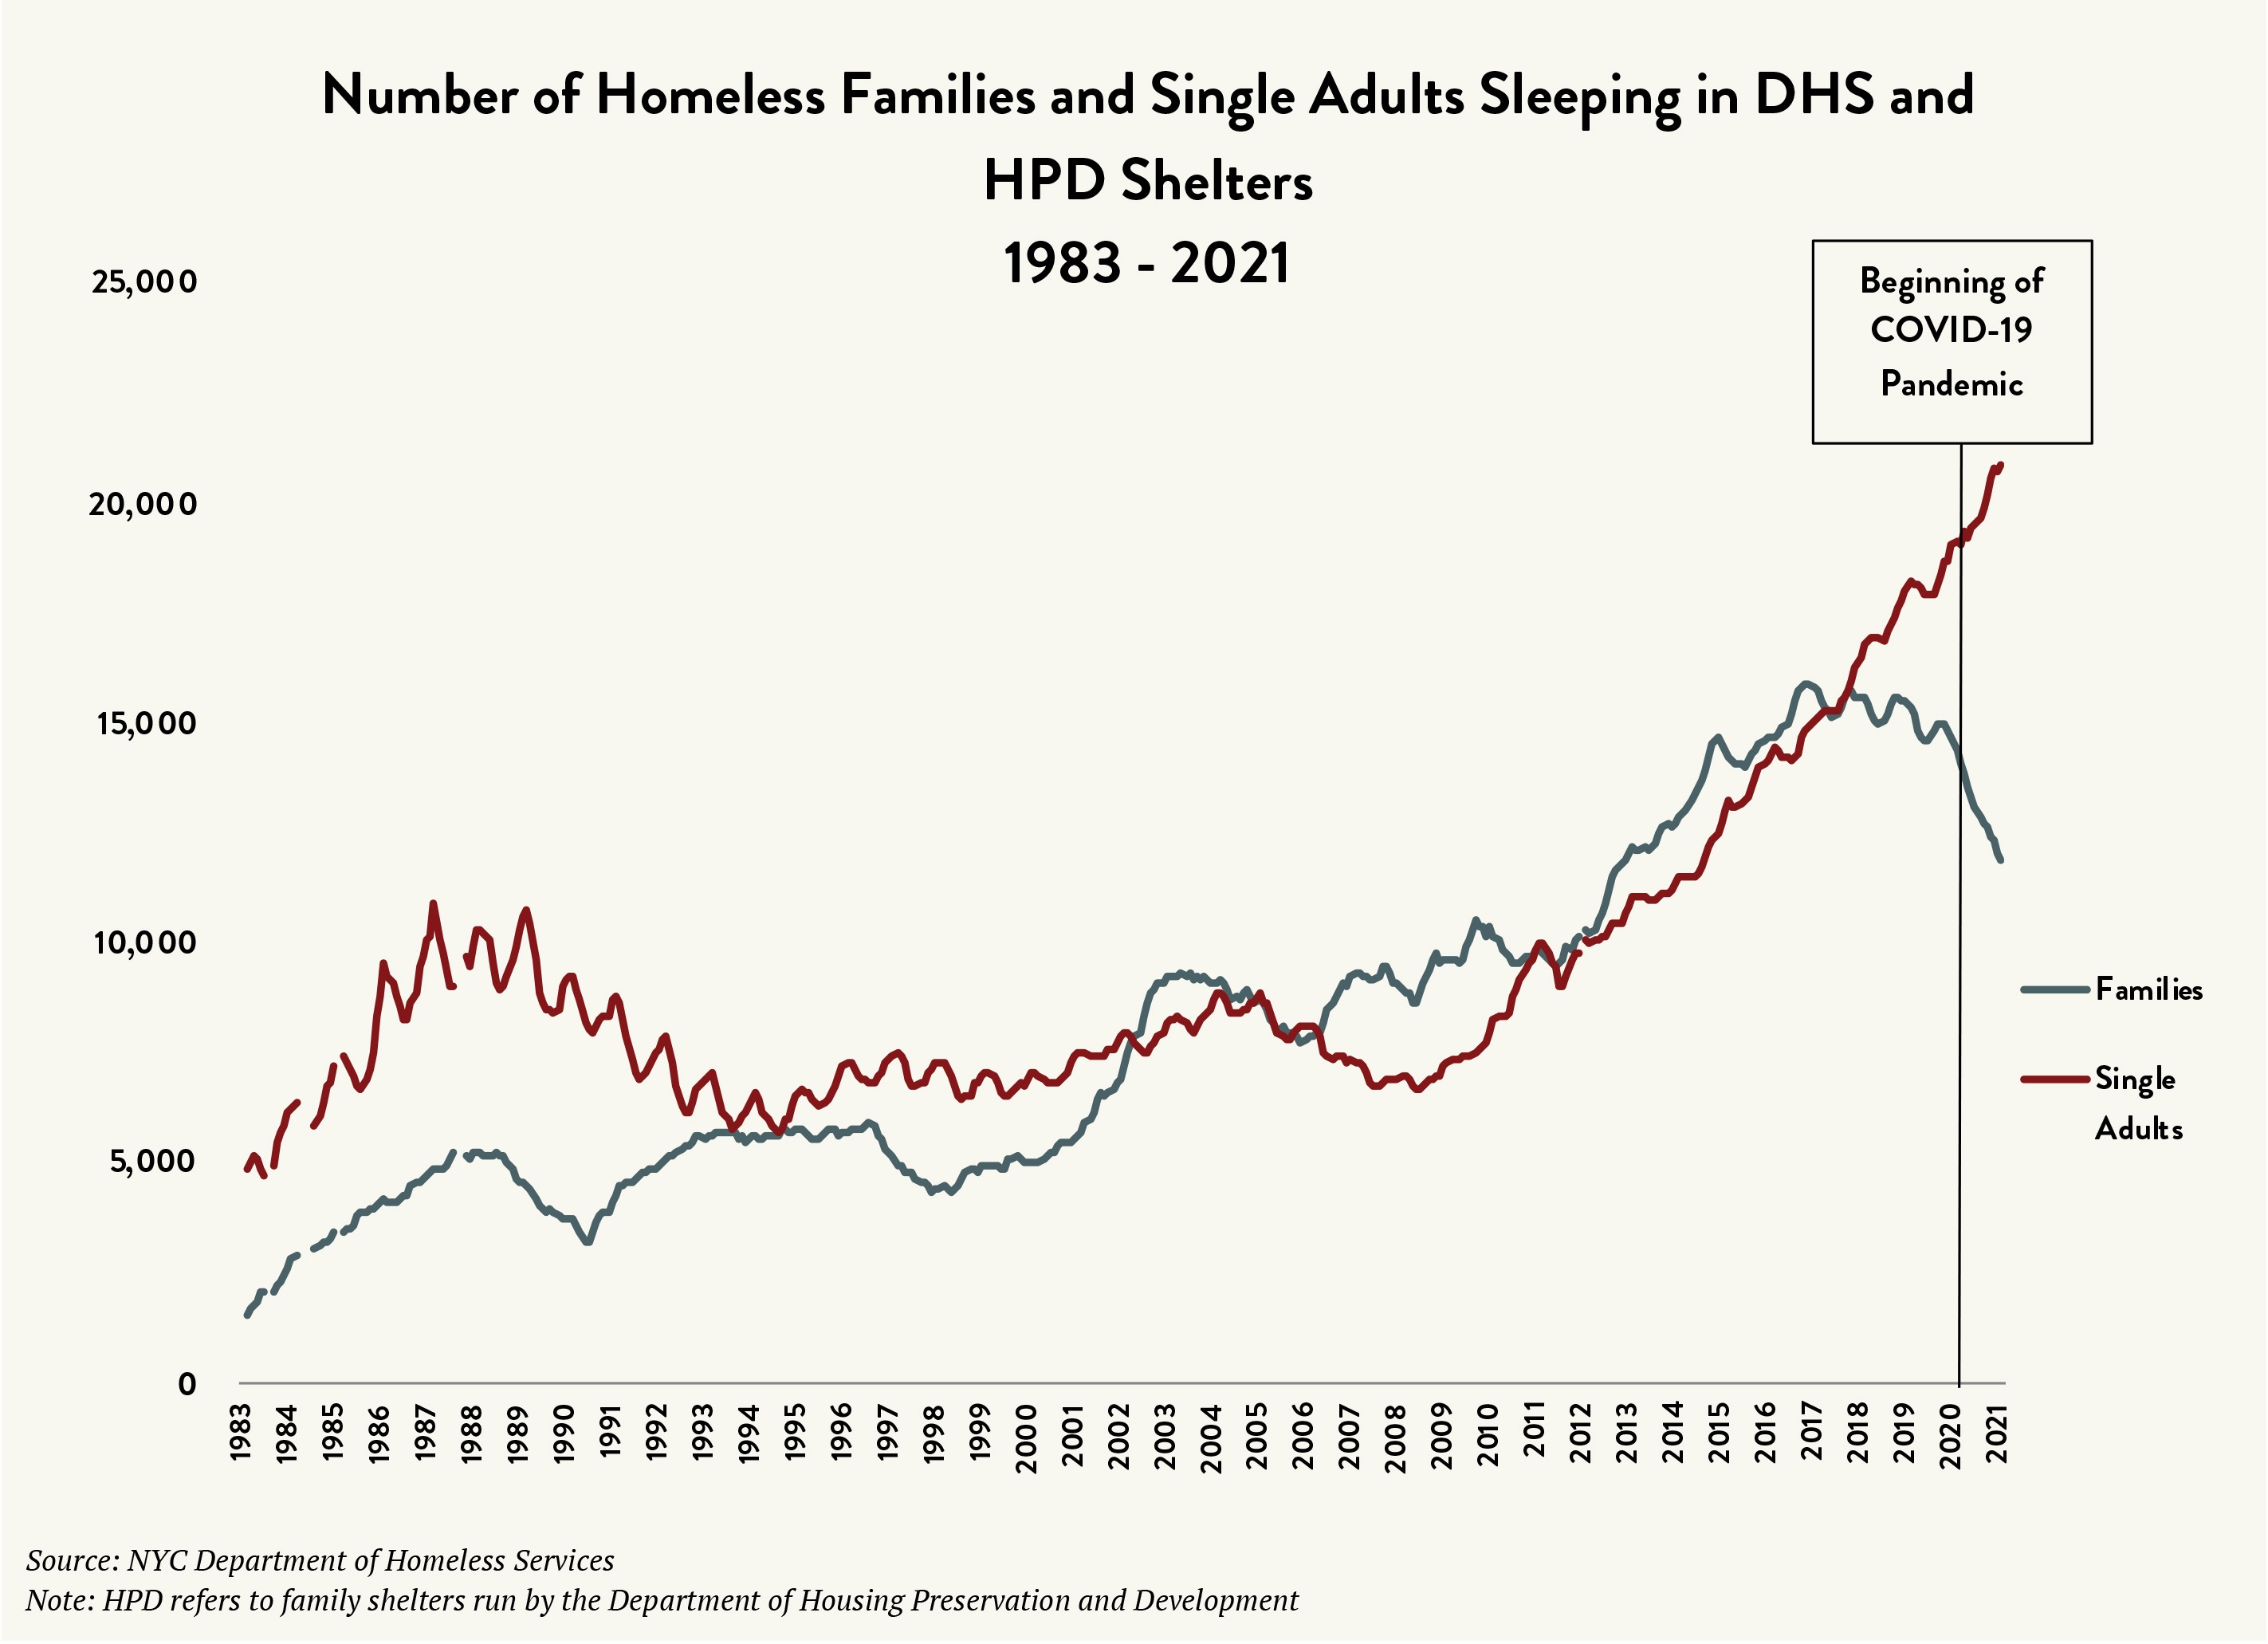 """A graph labeled """"Number of Homeless Families and Single Adults Sleeping in DHS and HPD Shelters 1983-2021."""" The vertical axis lists numbers 0 to 25,000 in increments of 5,000. The horizontal axis lists the years 1983 through 2021 with a marker at 2020 labeled """"Beginning of COVID-19 Pandemic."""" Two lines run horizontally with multiple peaks and troughs: A red line shows the number of single adults rising in recent years, and a gray line shows the number of families falling in recent years."""